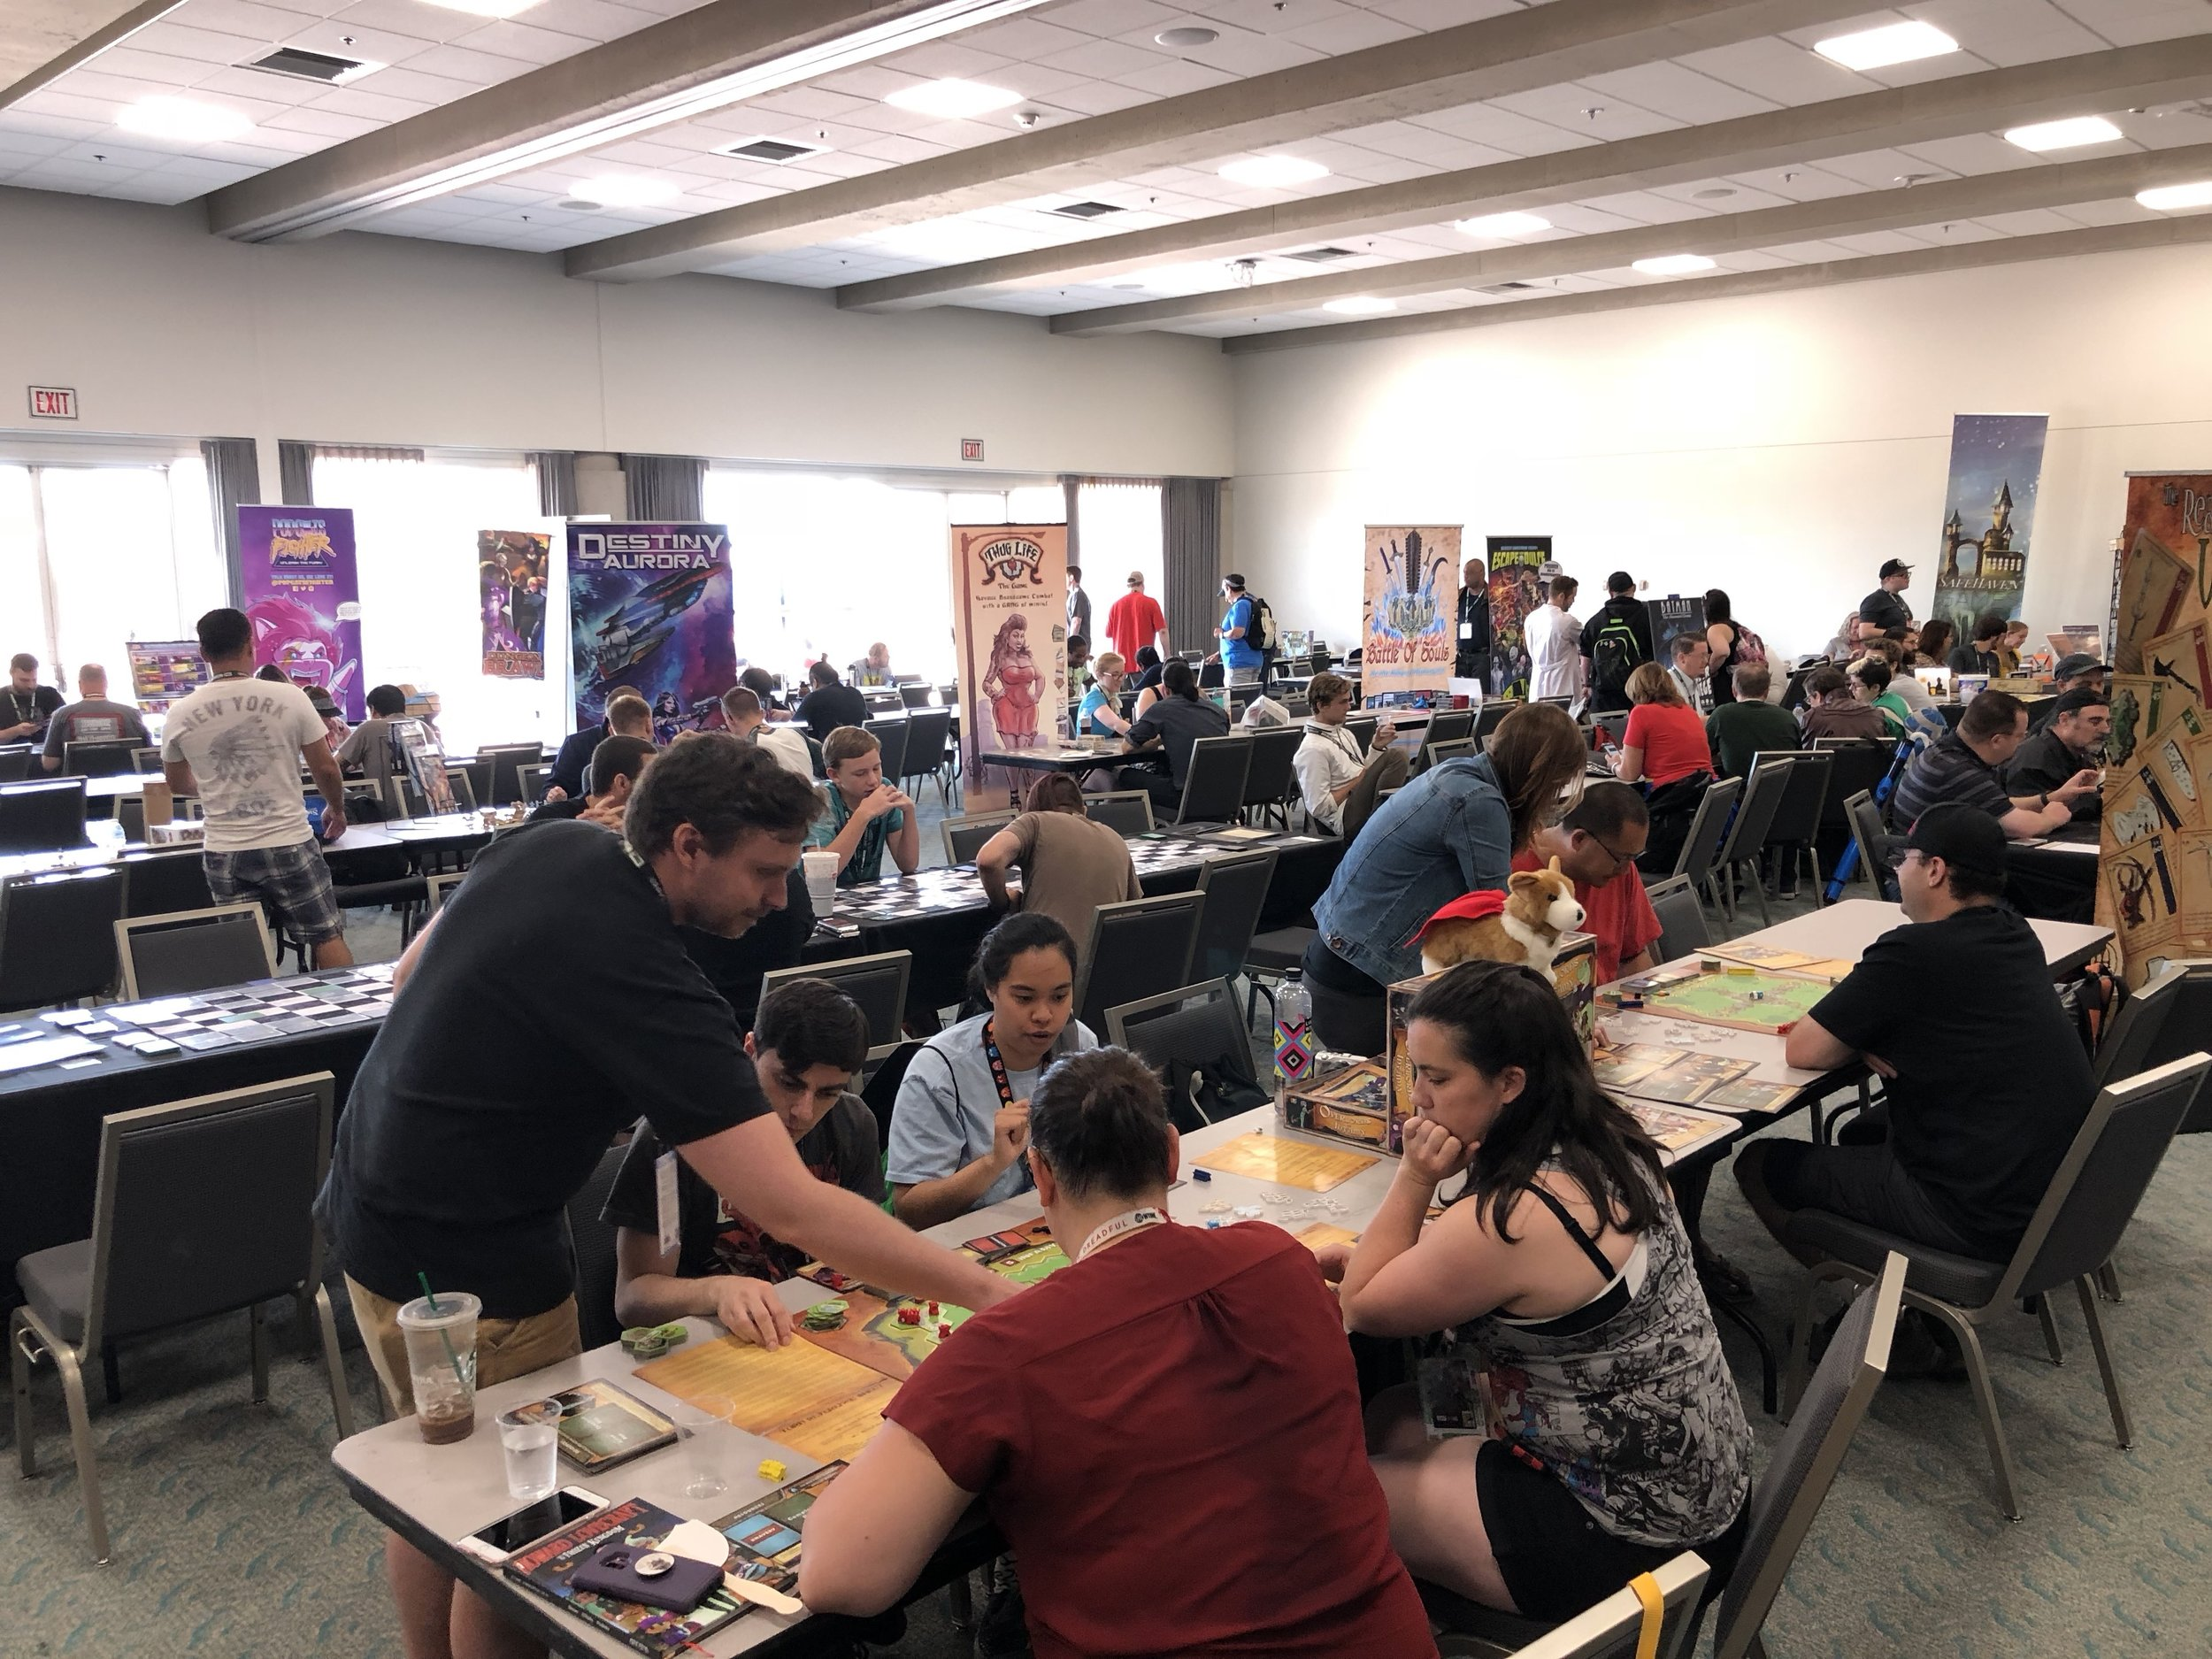 Gaming and Board games are a staple of most Comic Cons.  If you are are an enthusiast who likes supporting the cause or if you are just curious about up-and-coming new games, it's a worthy stop to make.   Game designers are friendly and passionate people, It's hard not to be inspired and root for them.